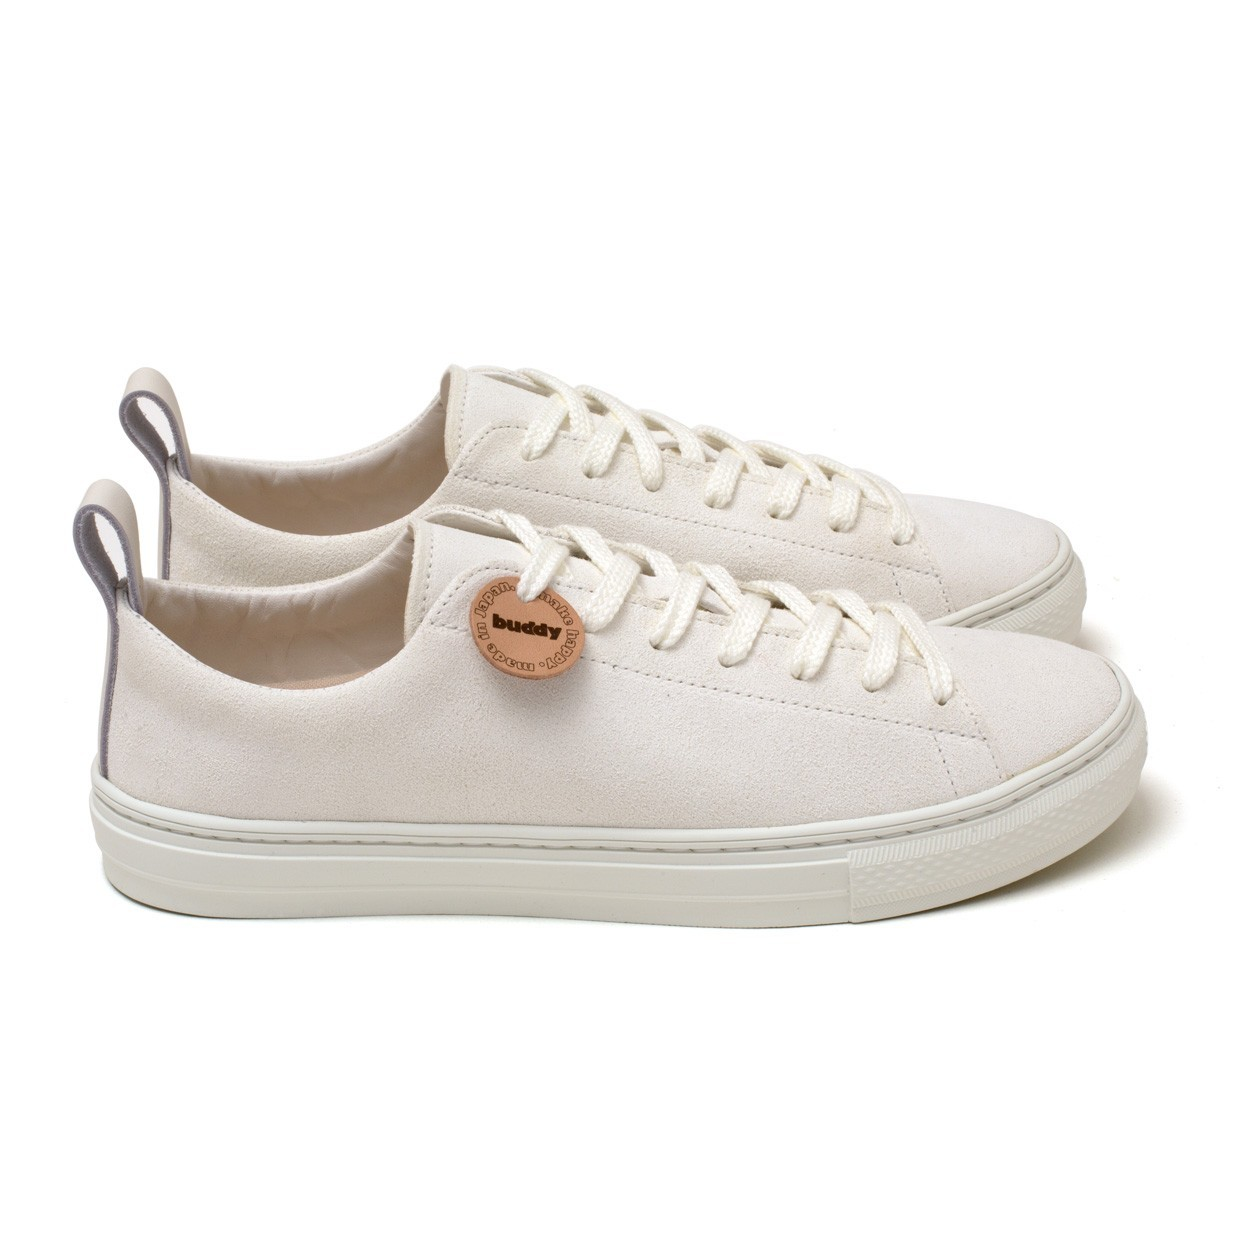 Bull Terrier Low Chubby White Suede